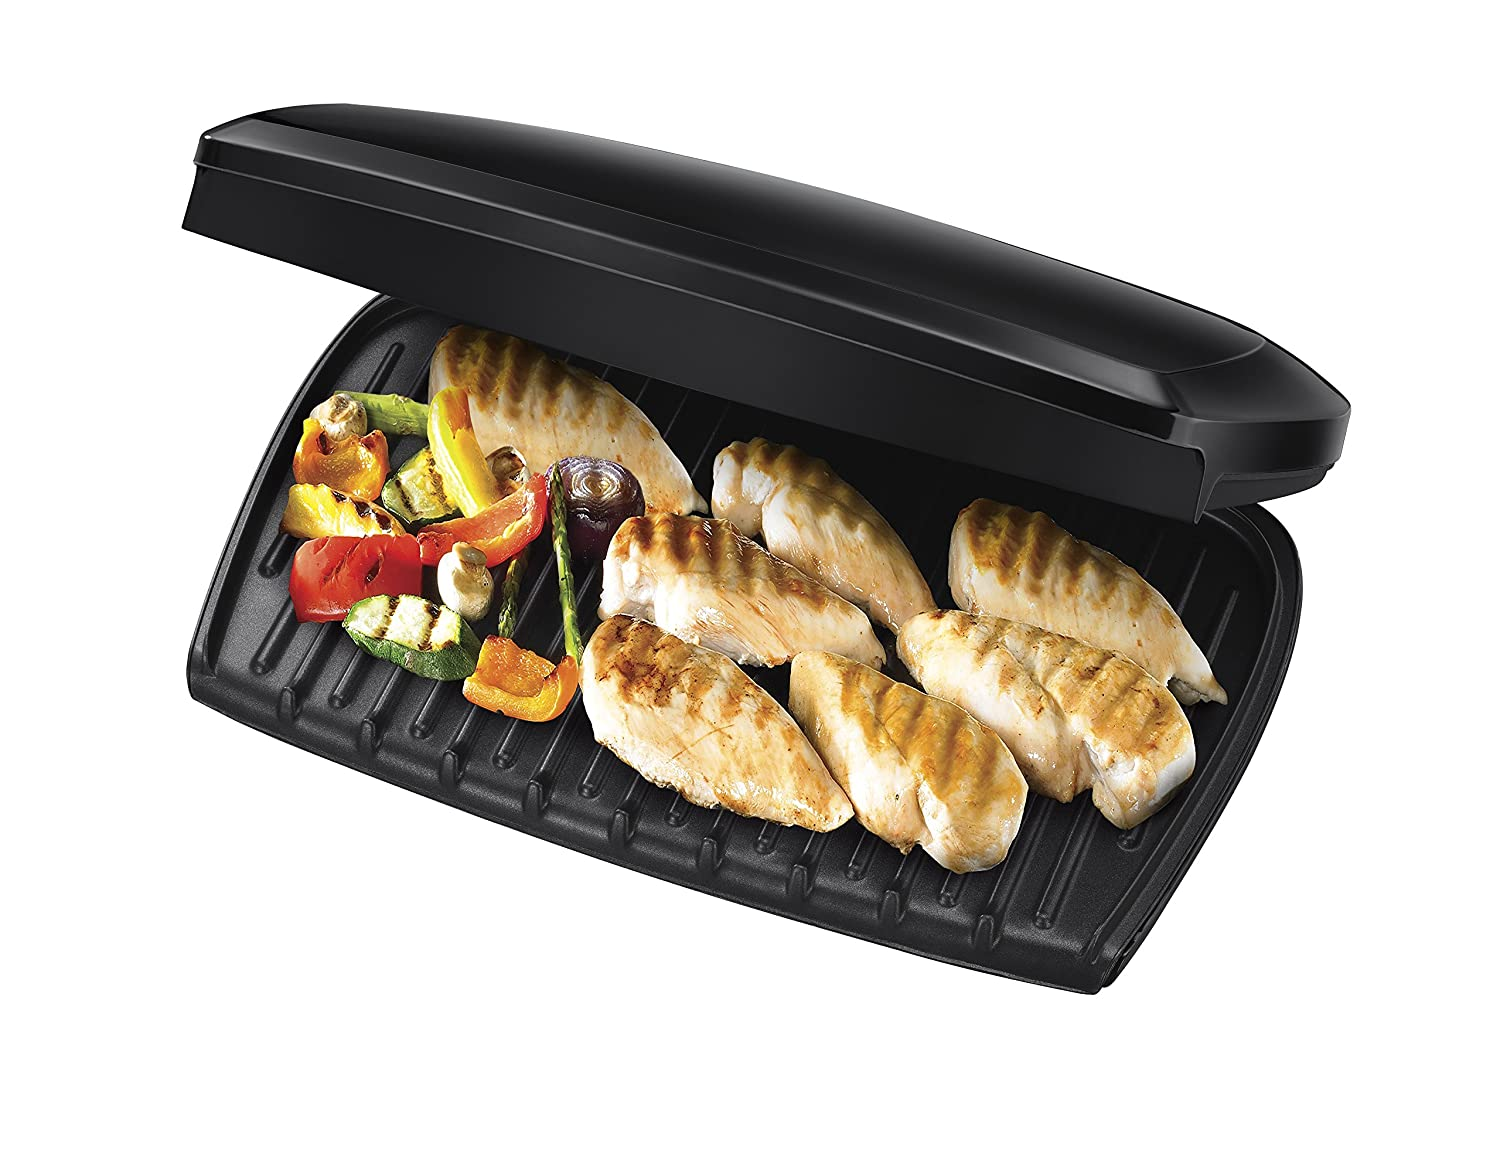 New george foreman entertaining 10 portion grill 23440 black - Drip tray george foreman grill ...